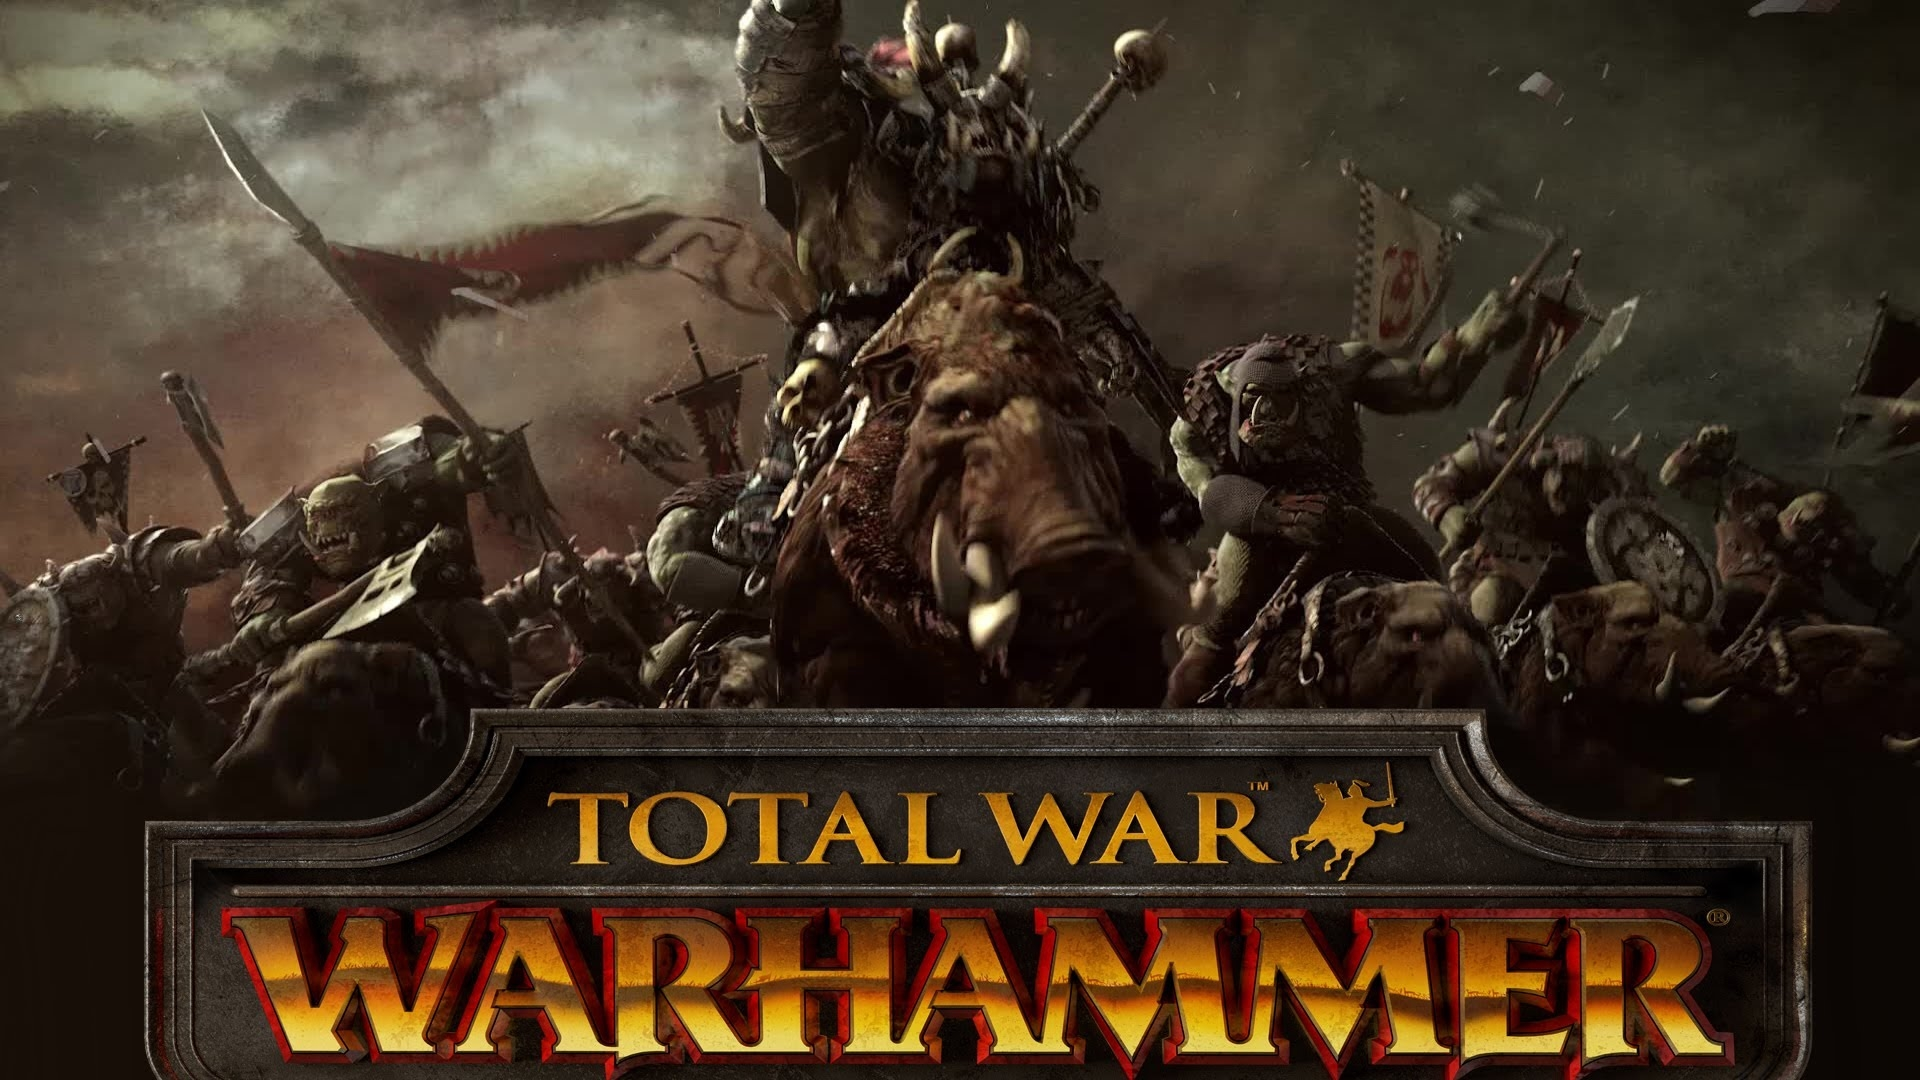 Total War: Warhammer-post Release Free DLC Revealed